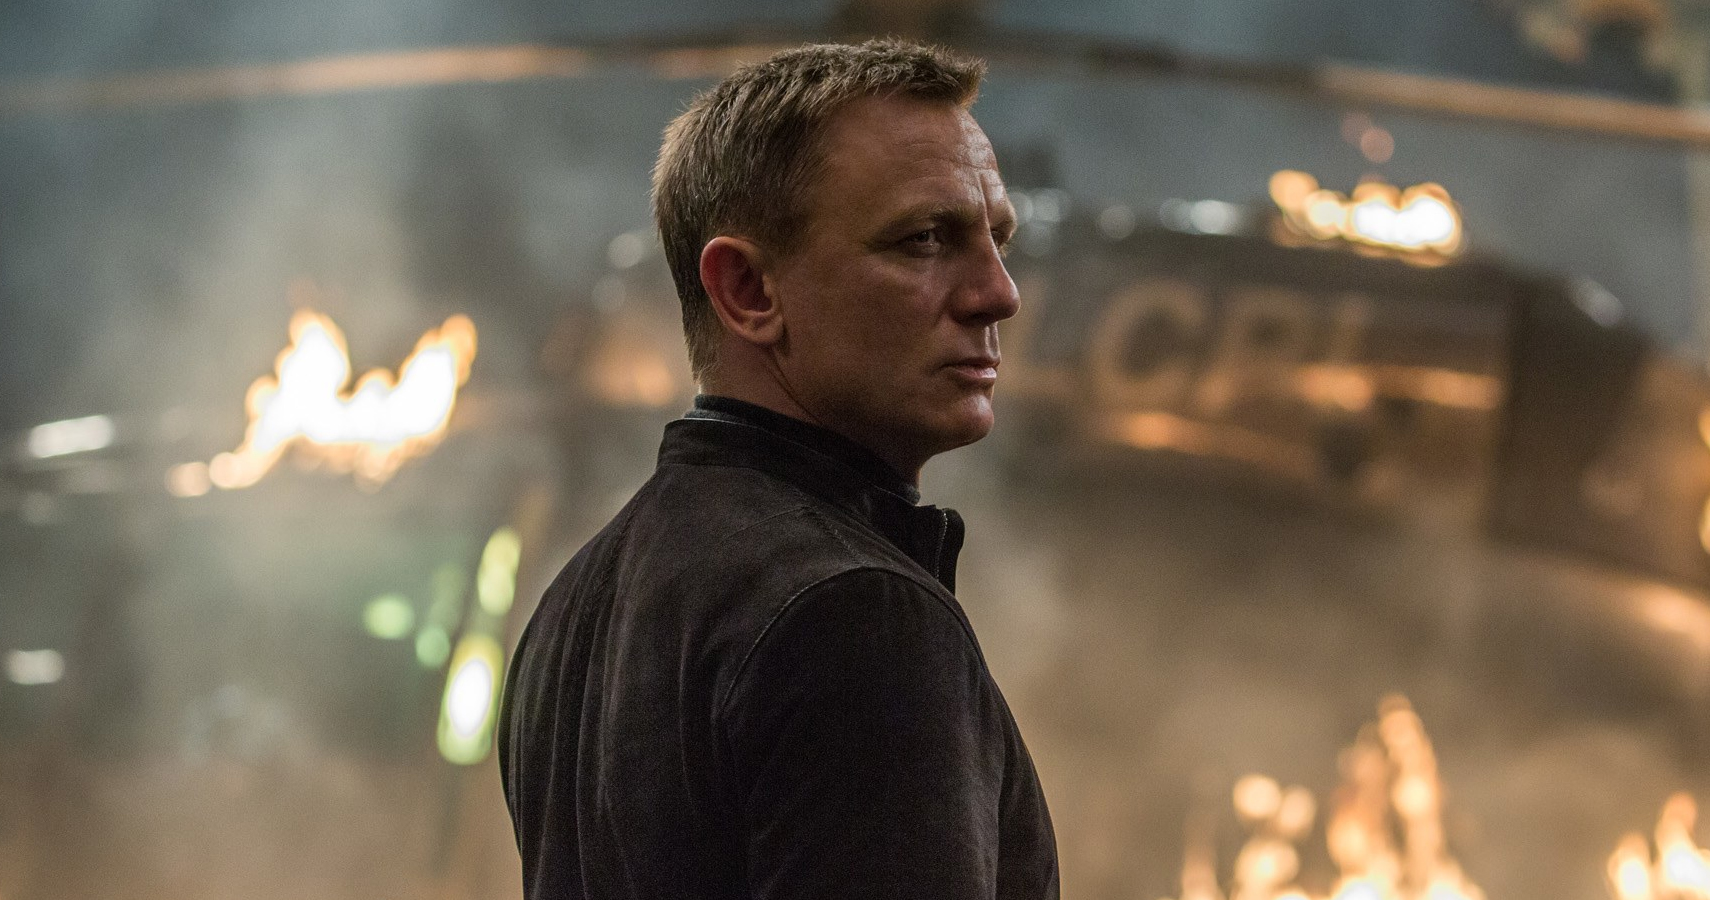 Bond 25: Why The Next 007 Film Needs A Female Director